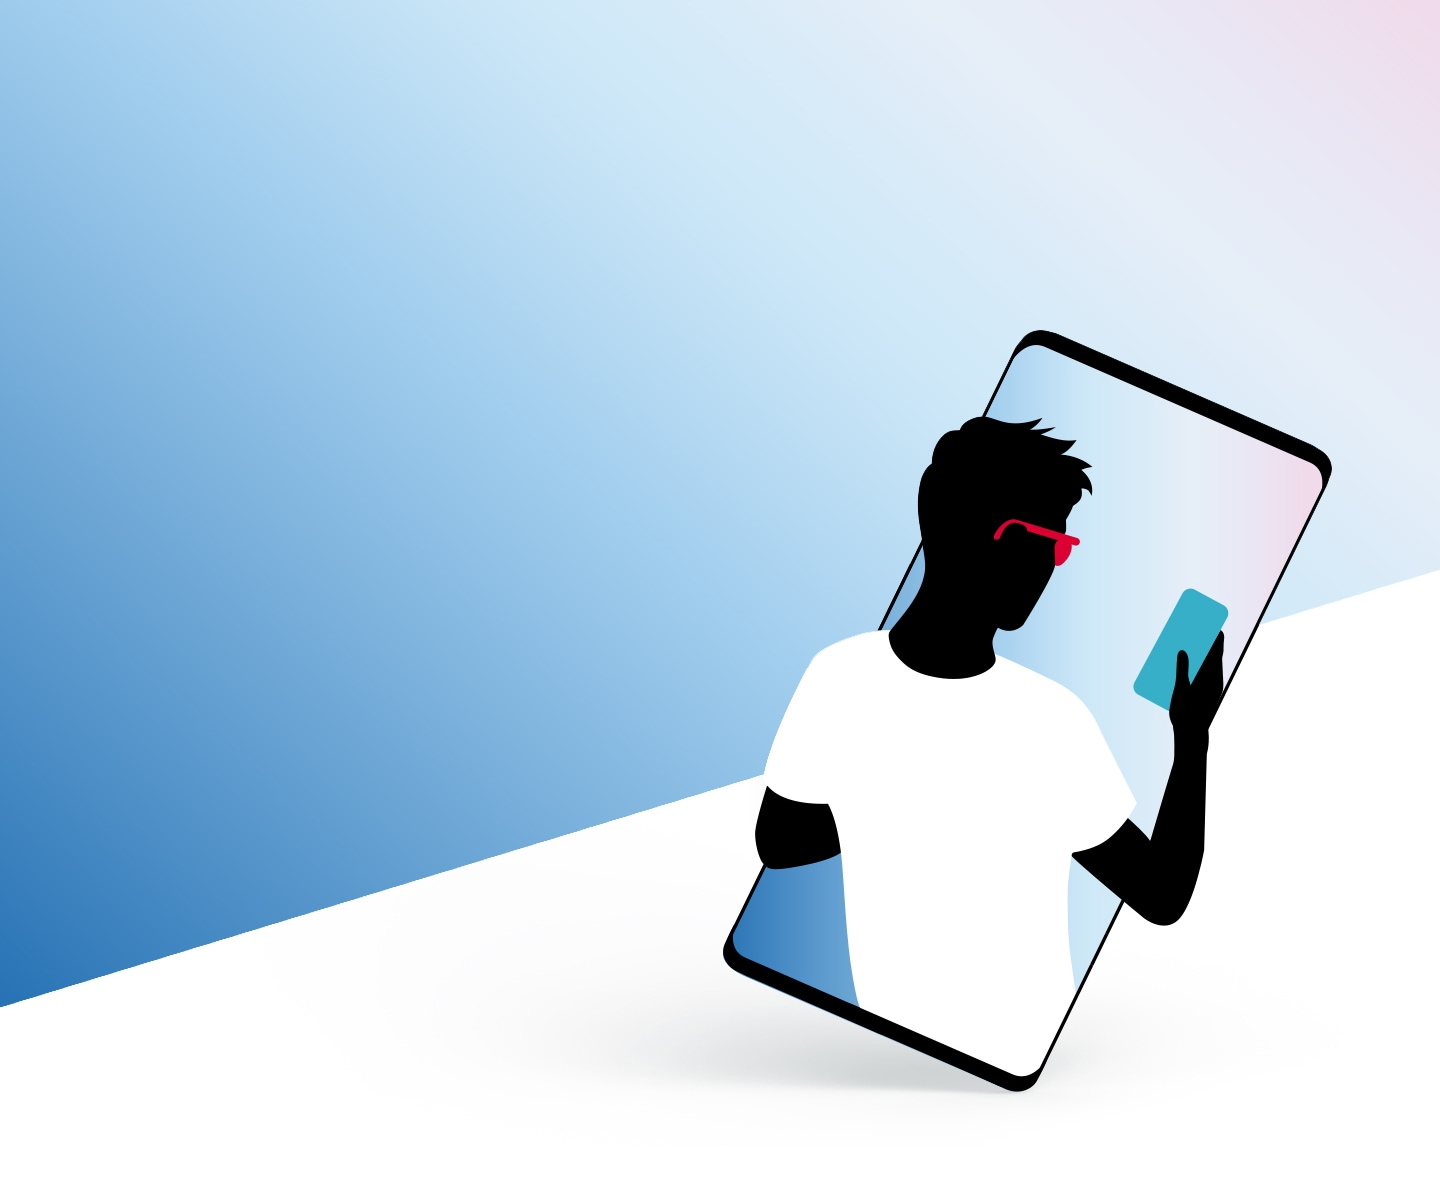 Within a Galaxy S10 we see an illustration of a businessman with red sunglasses holding a blue Galaxy phone.